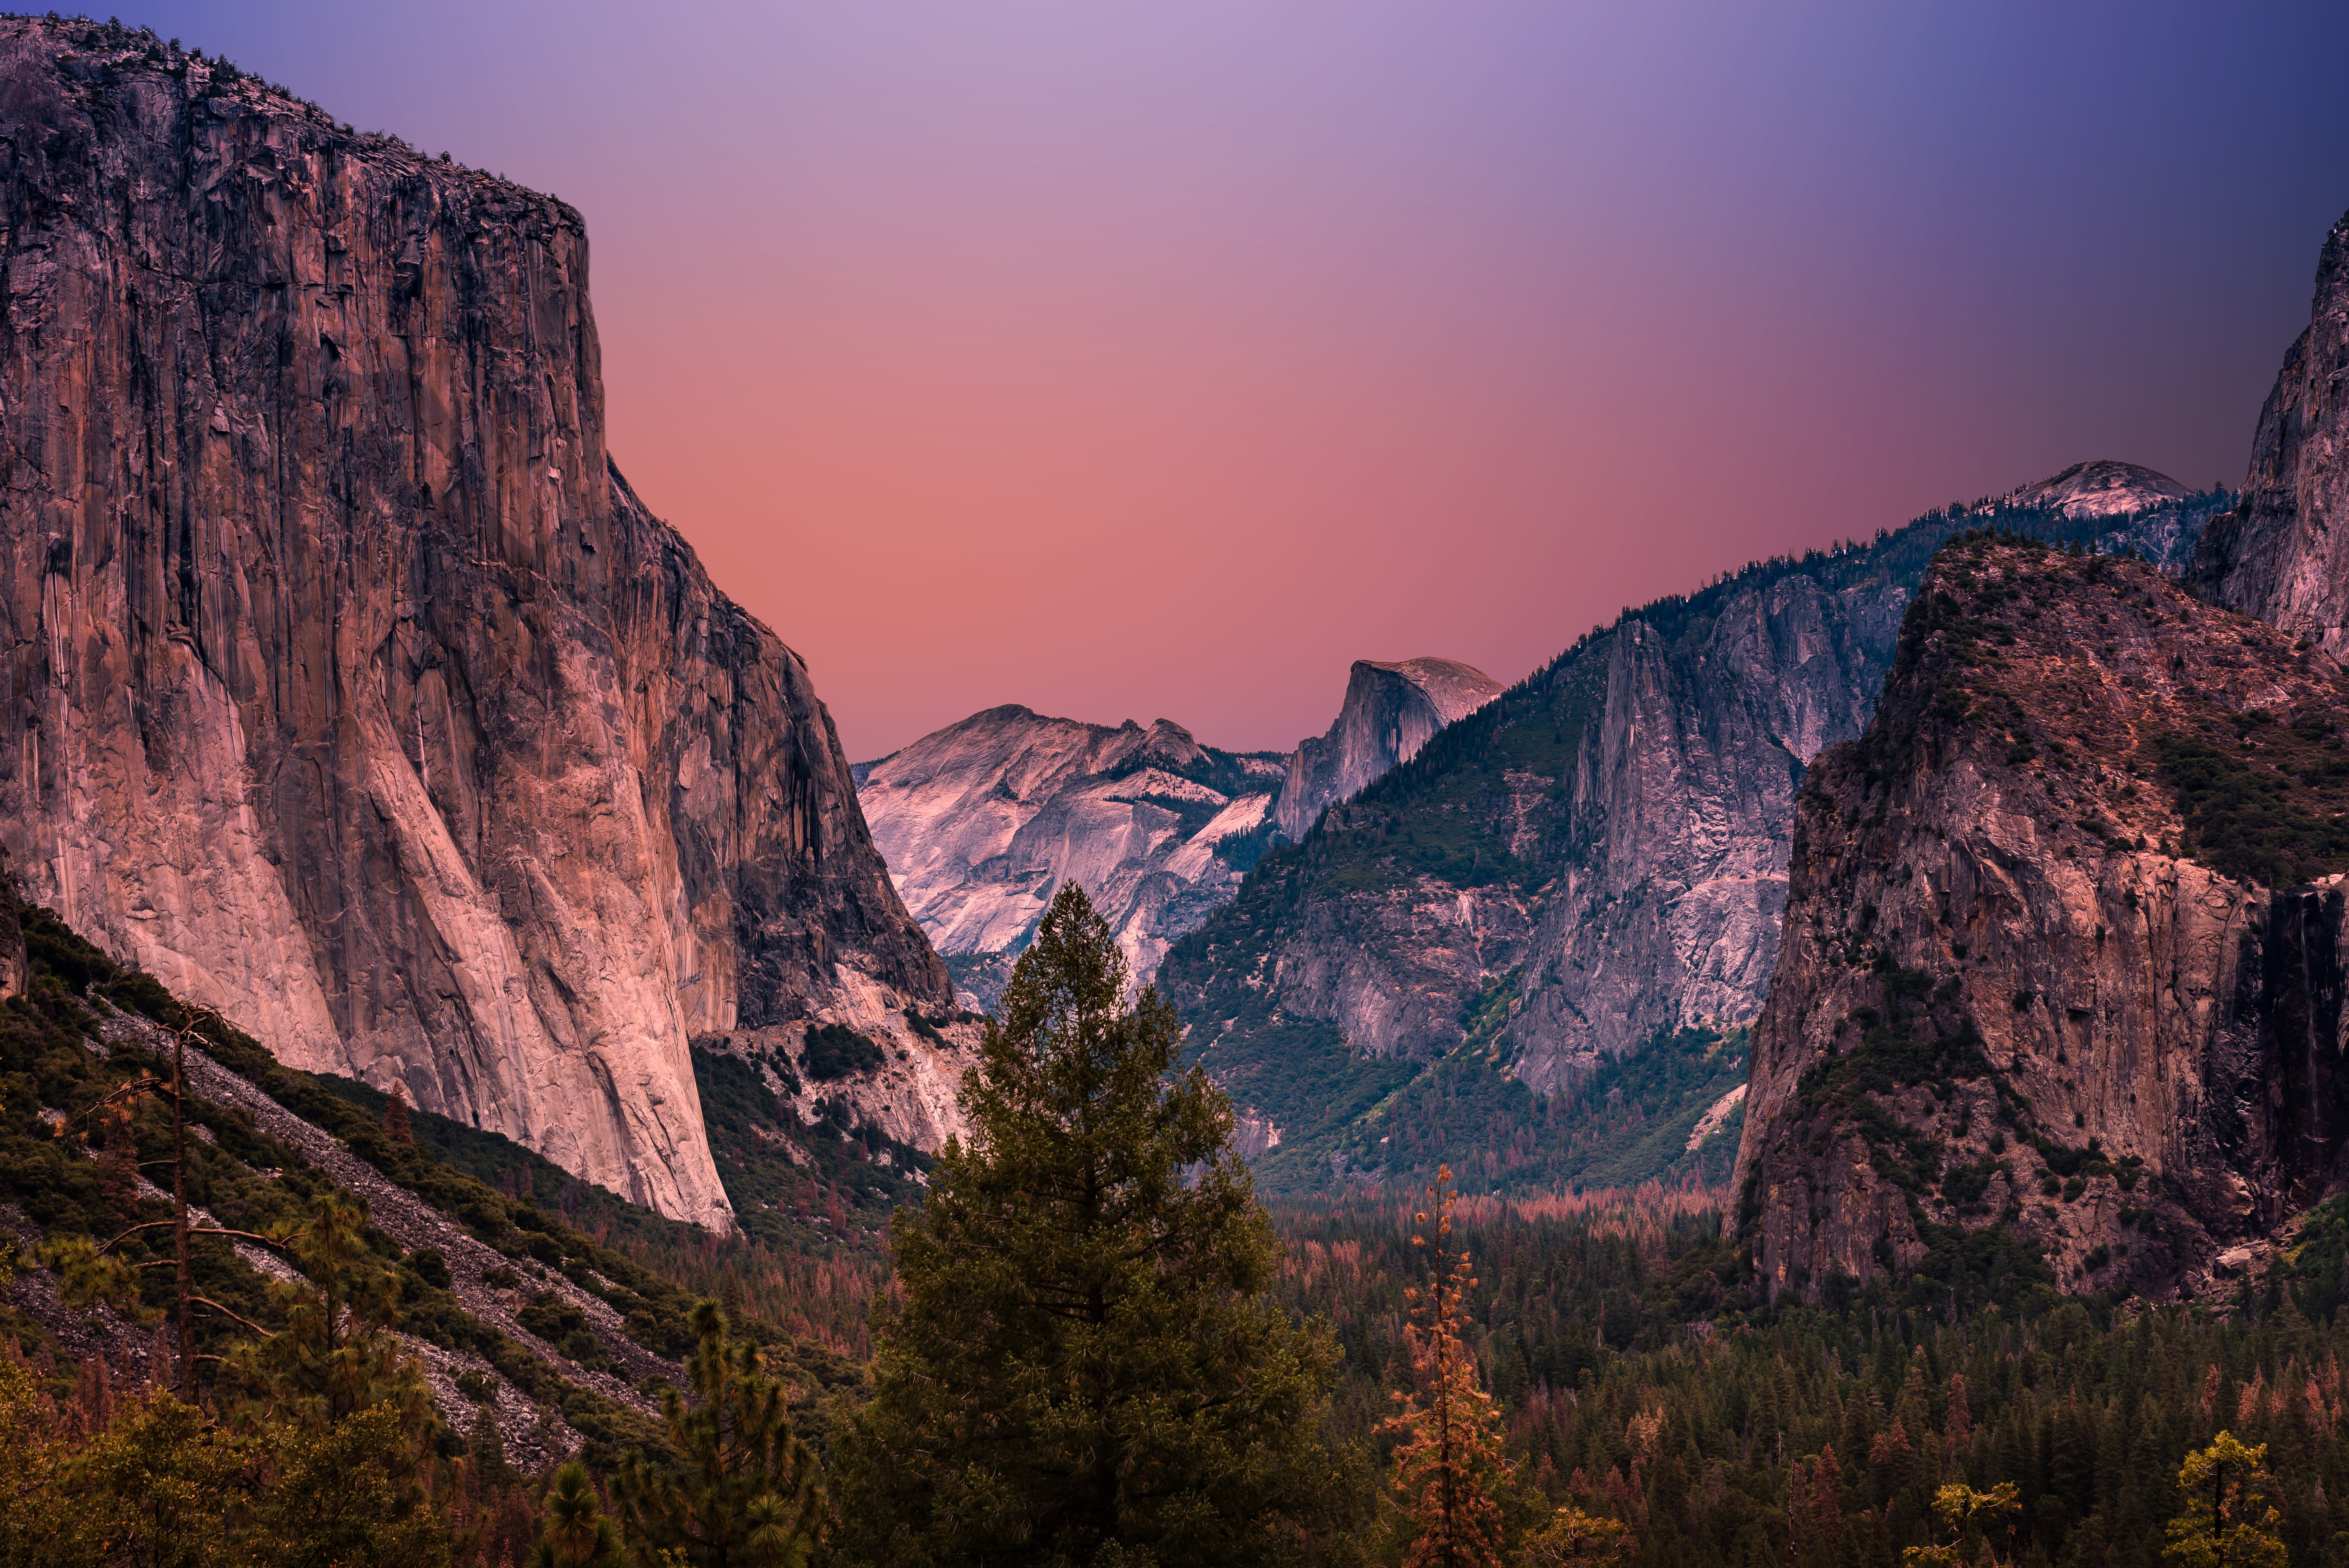 Yosemite Valley at dawn-or-dusk with a forest foreground, mountain range mid-ground and red and mauve sky in the background